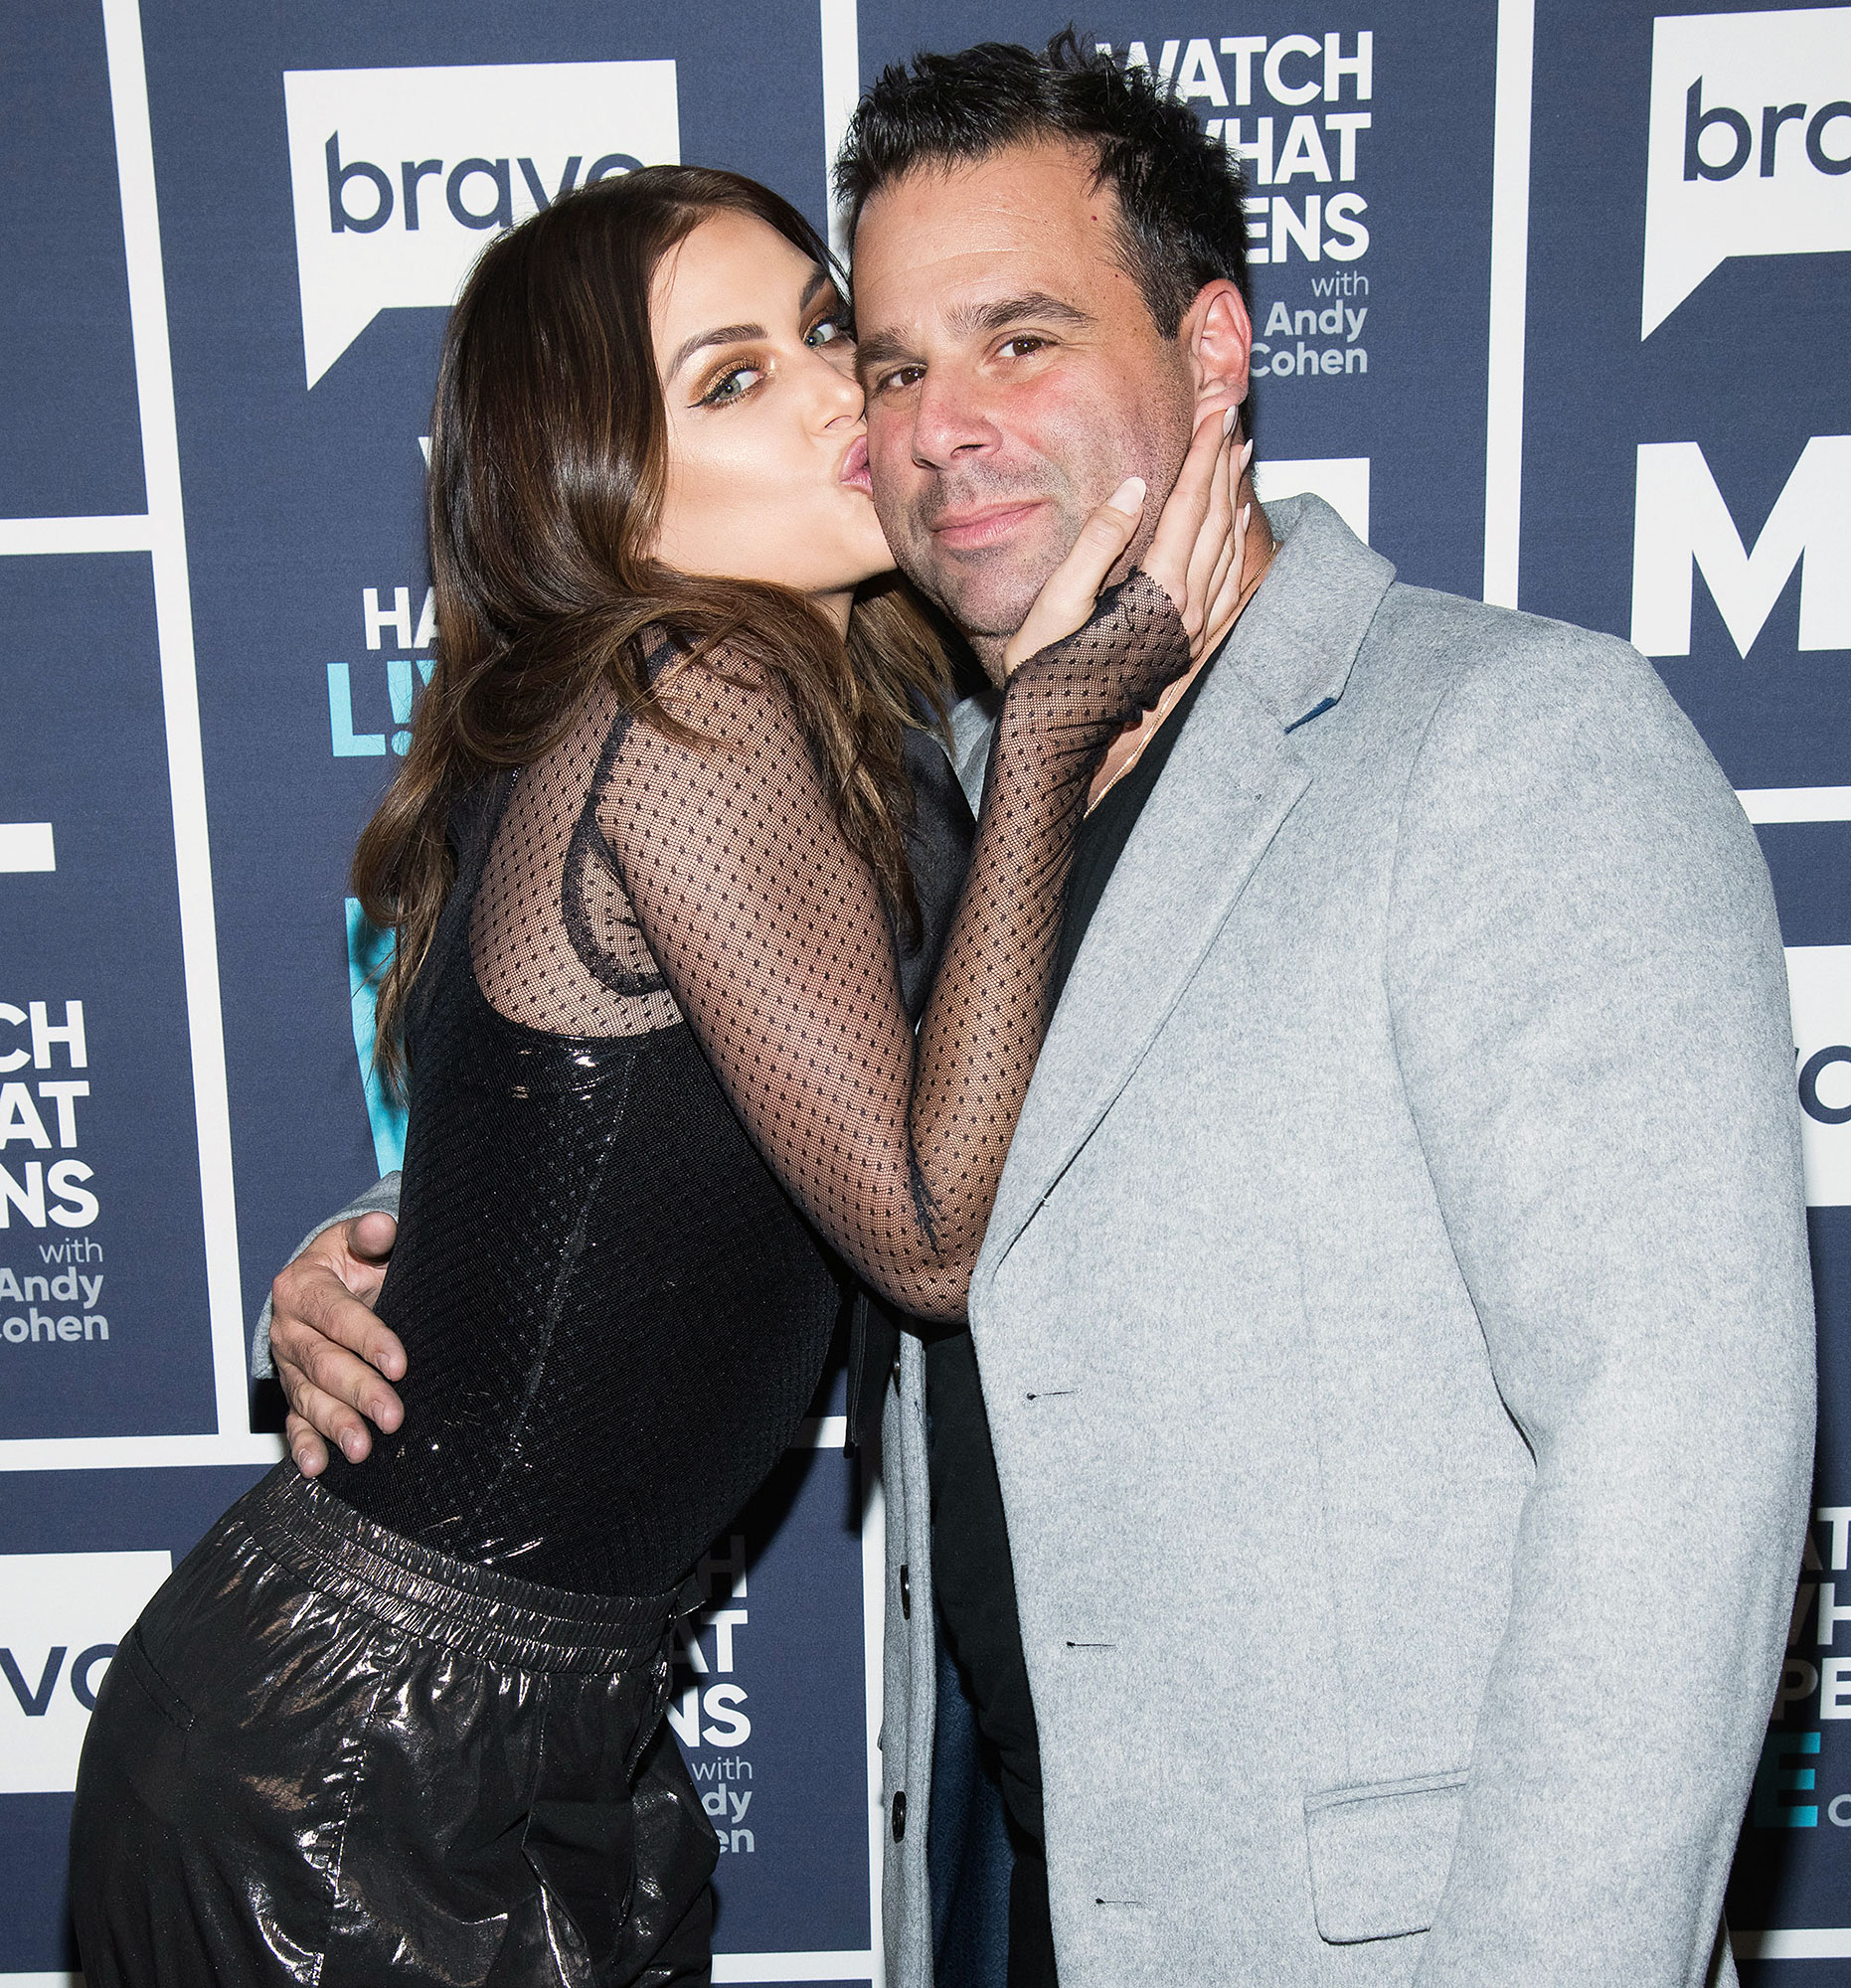 Lala Kent Fiance Randall Emmett Most Incredible Human in the World